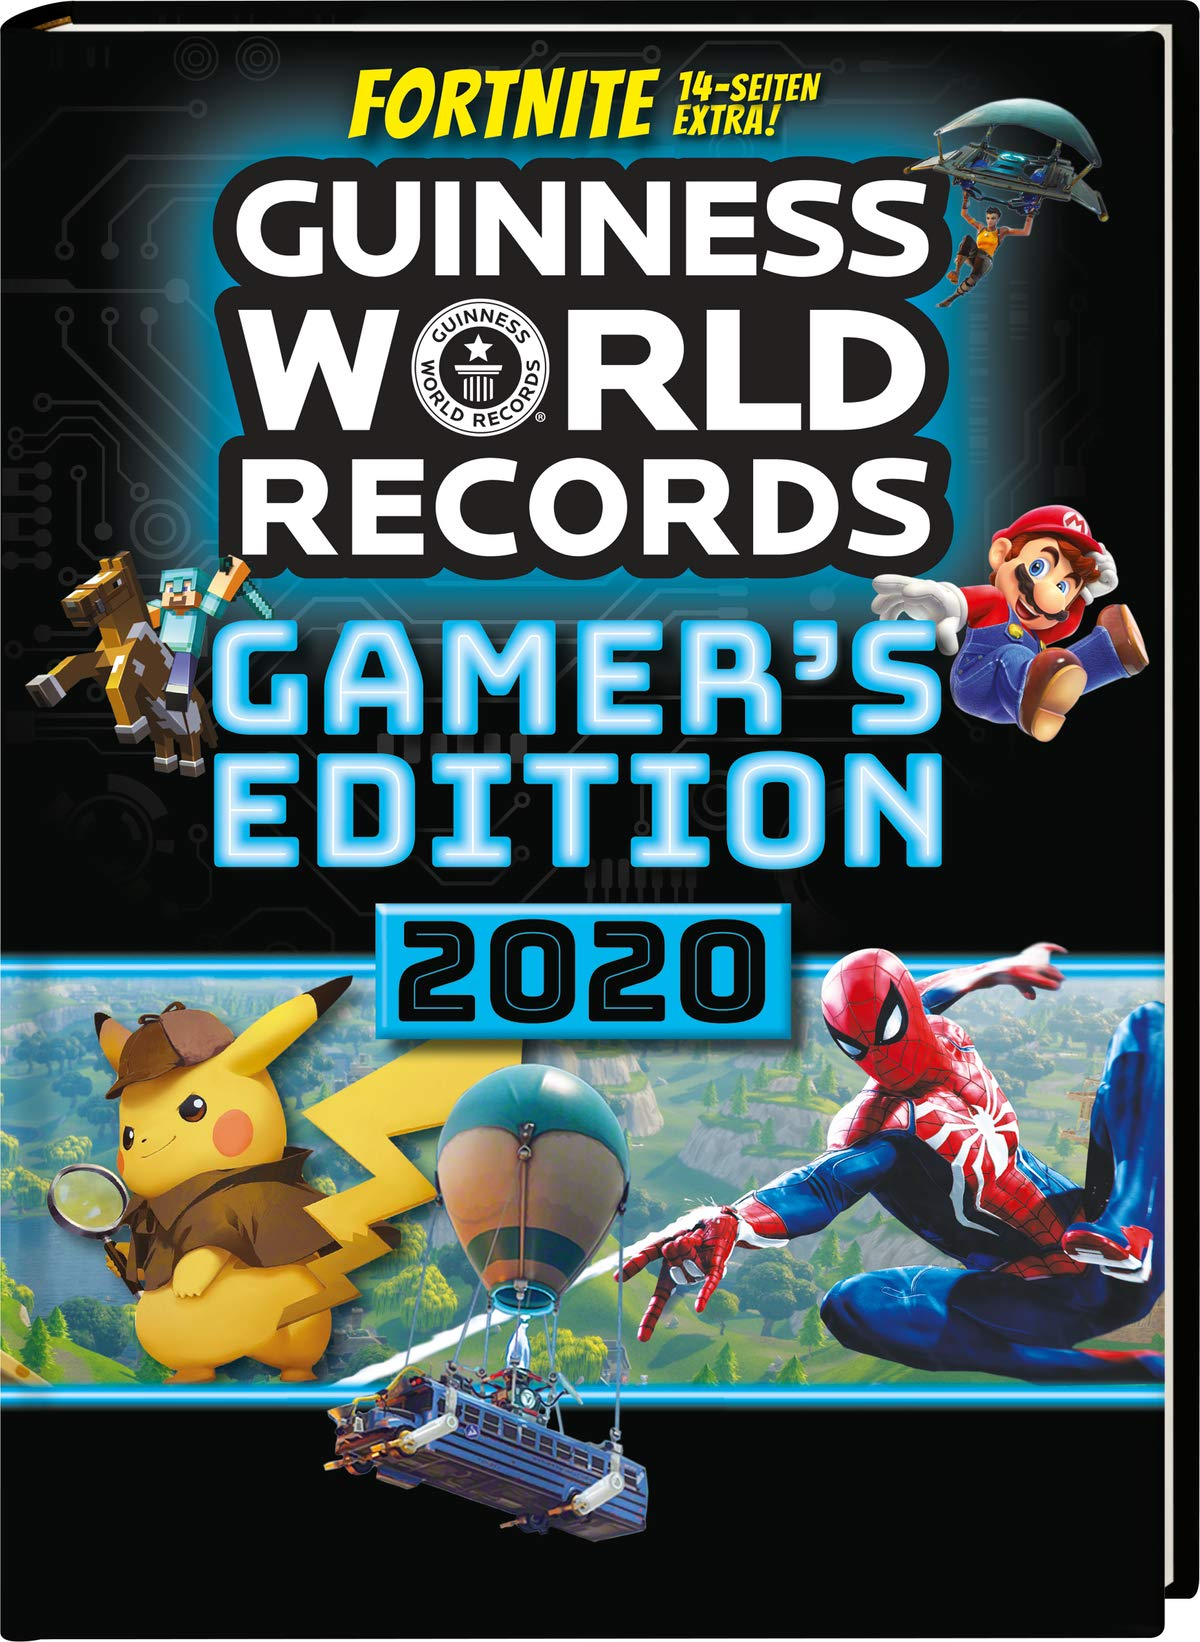 Guinness World Records Gamer's Edition 2020  Deutschsprachige Ausgabe